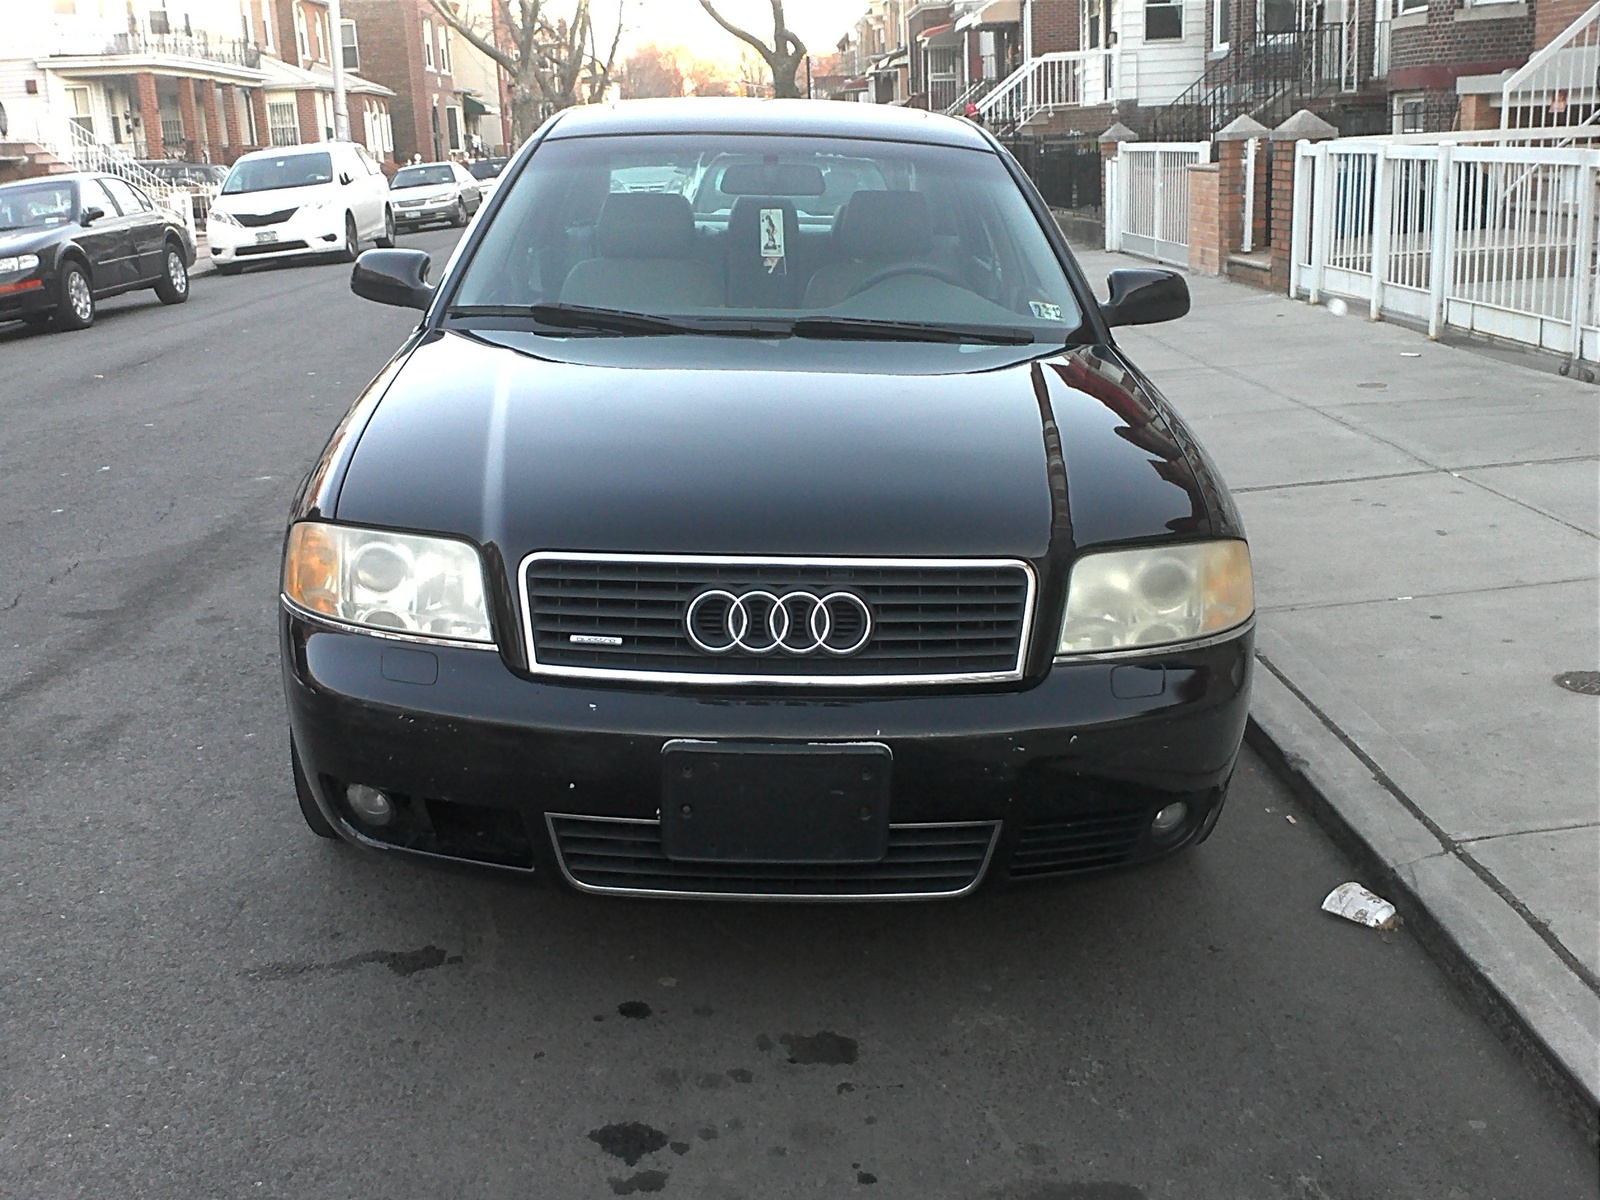 2002 audi a6 avant 2 7 t quattro related infomation specifications weili automotive network. Black Bedroom Furniture Sets. Home Design Ideas